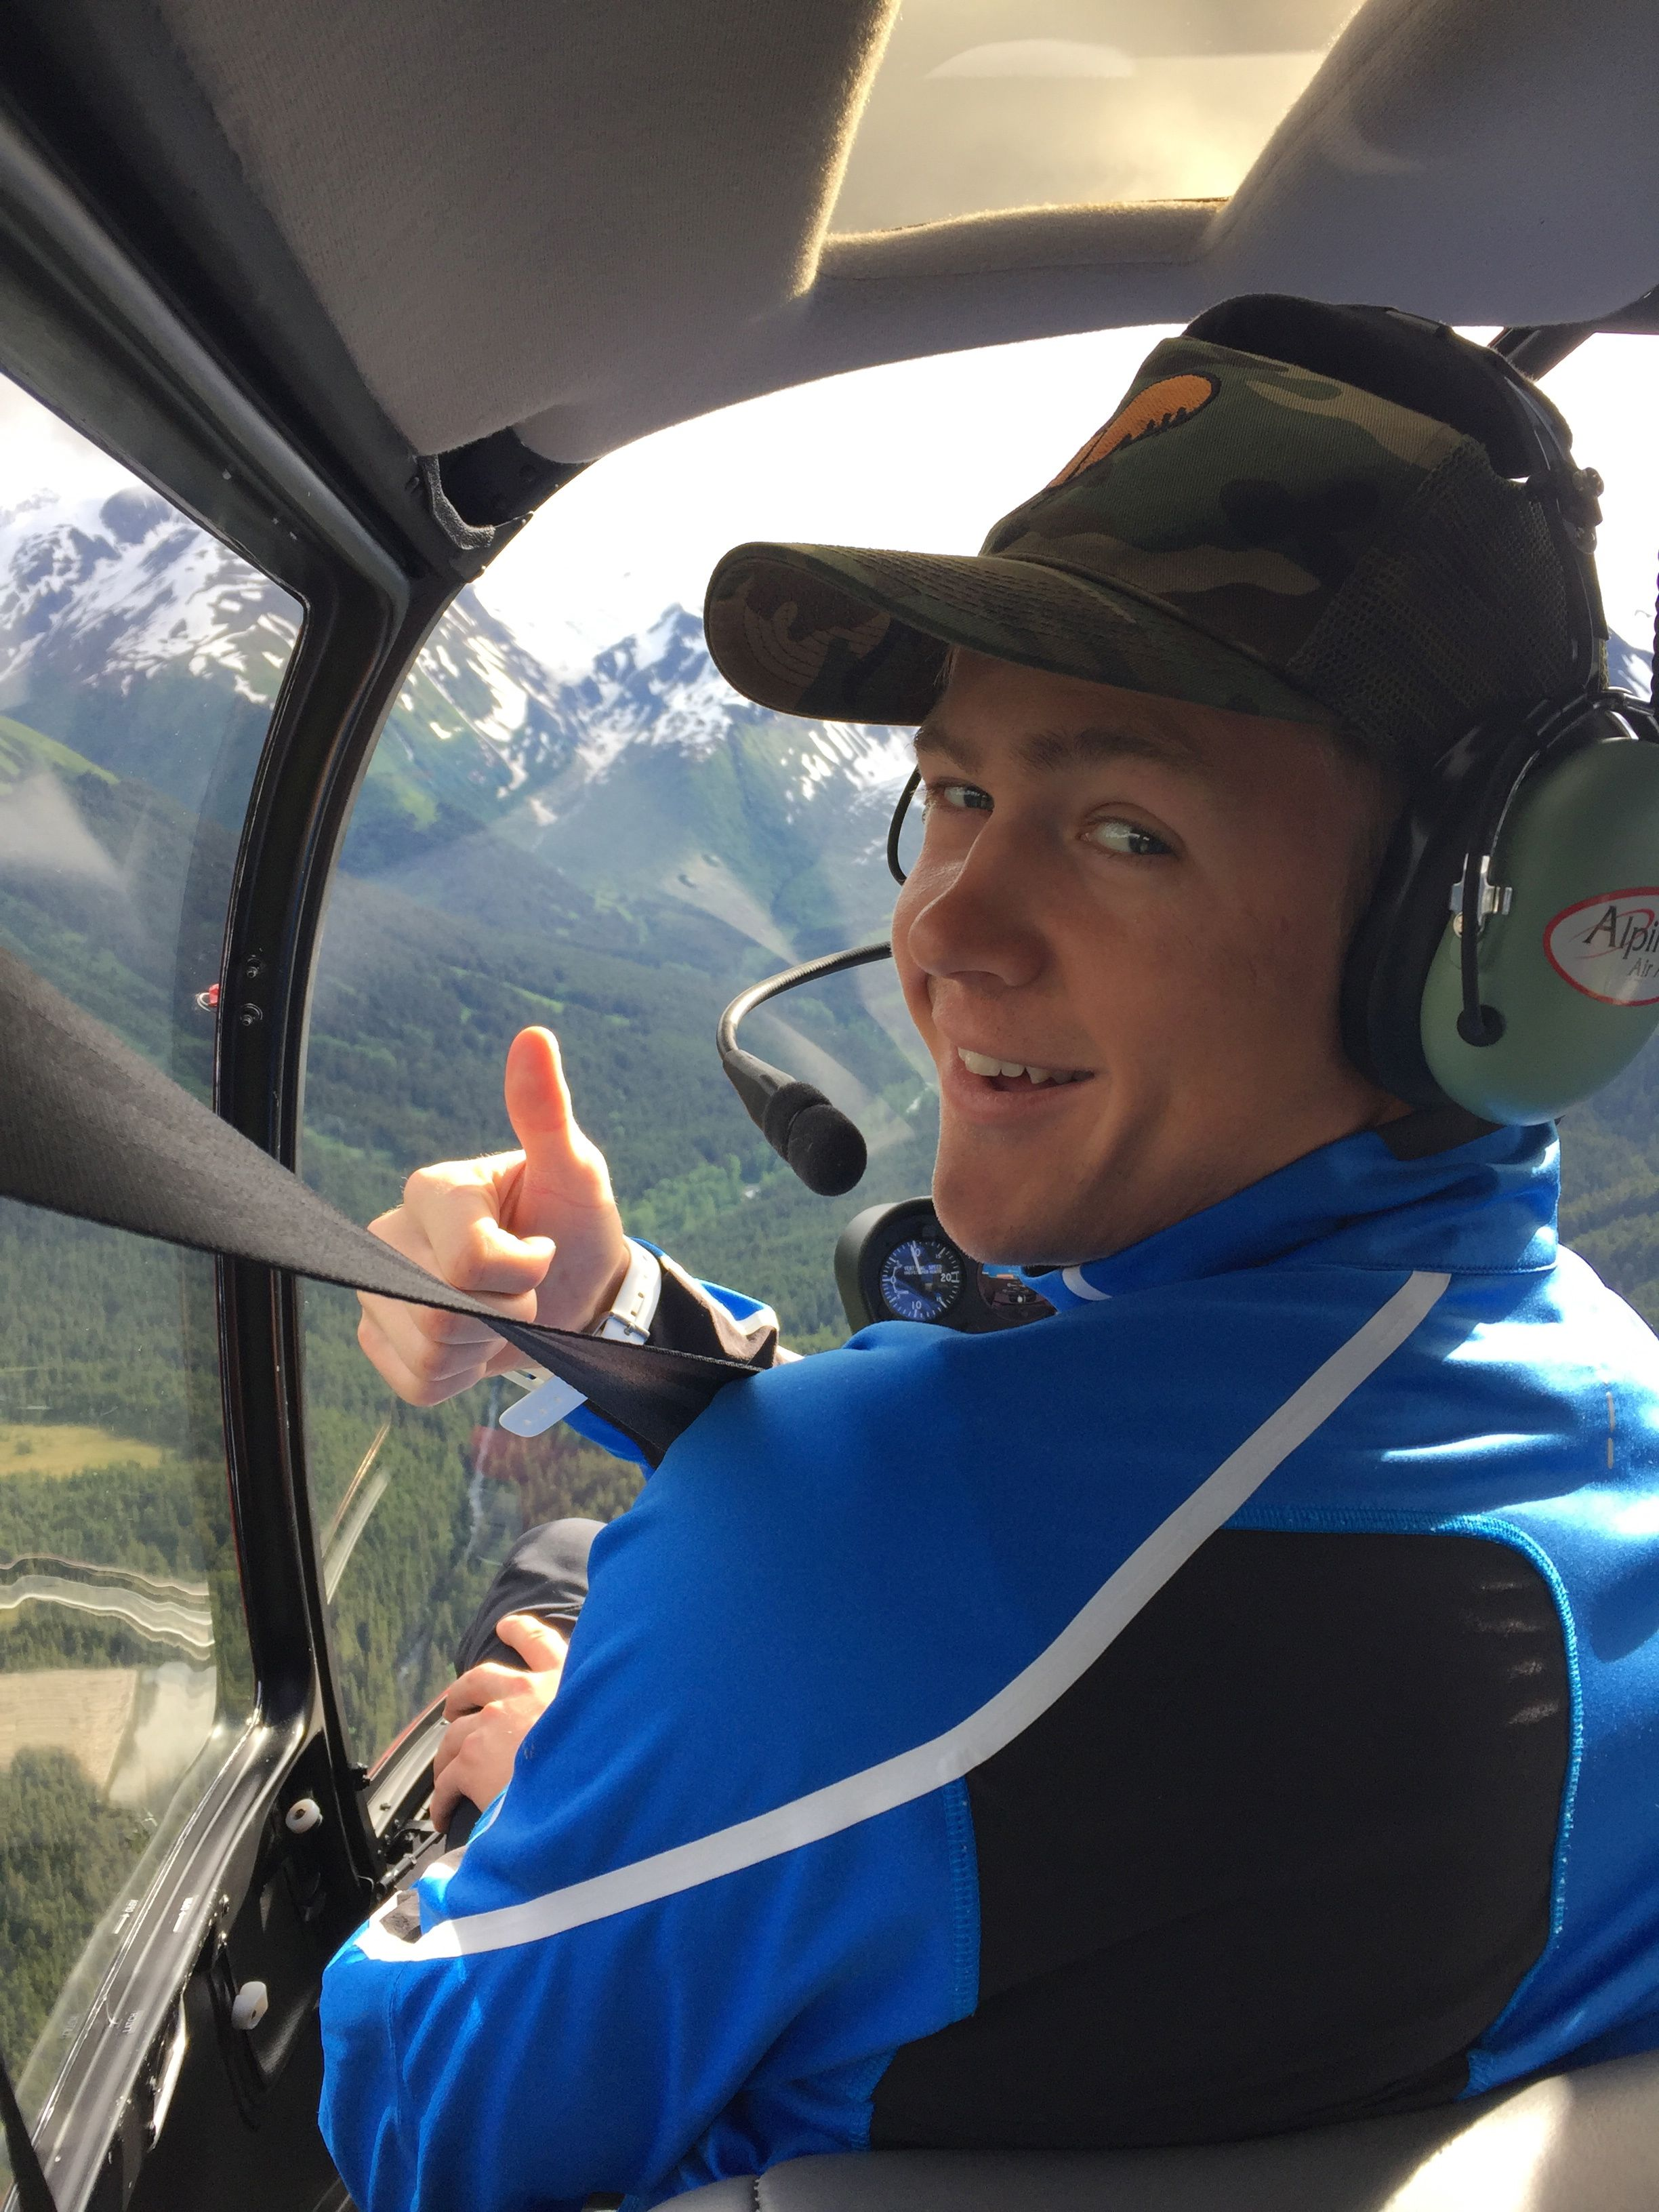 """Erik, pretty excited as we head up in our """"mountain taxi"""". Thanks to Alpine Air, we always get delivered and picked up safely to our little """"heaven"""" up in the mountains!"""